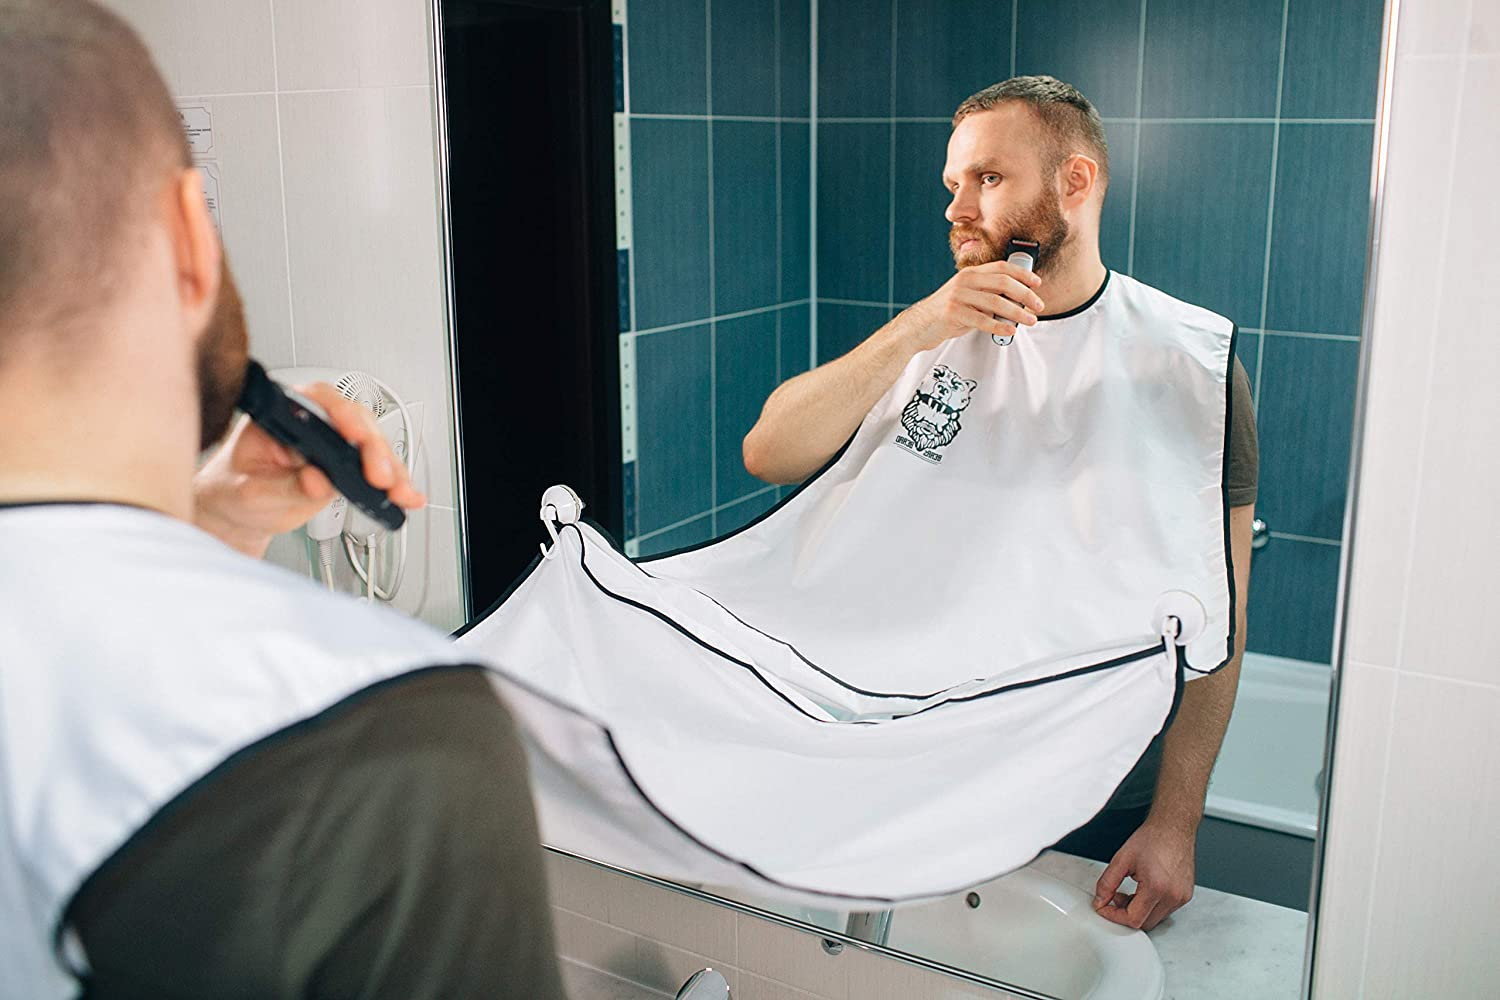 Bear's Beard Beard Apron Bib + Good Gift - Beard Catcher Apron for Trimming Your Beard - to Keep Yourself and your Sink Clean - Perfect Gift for Men – White Bear' s Beard